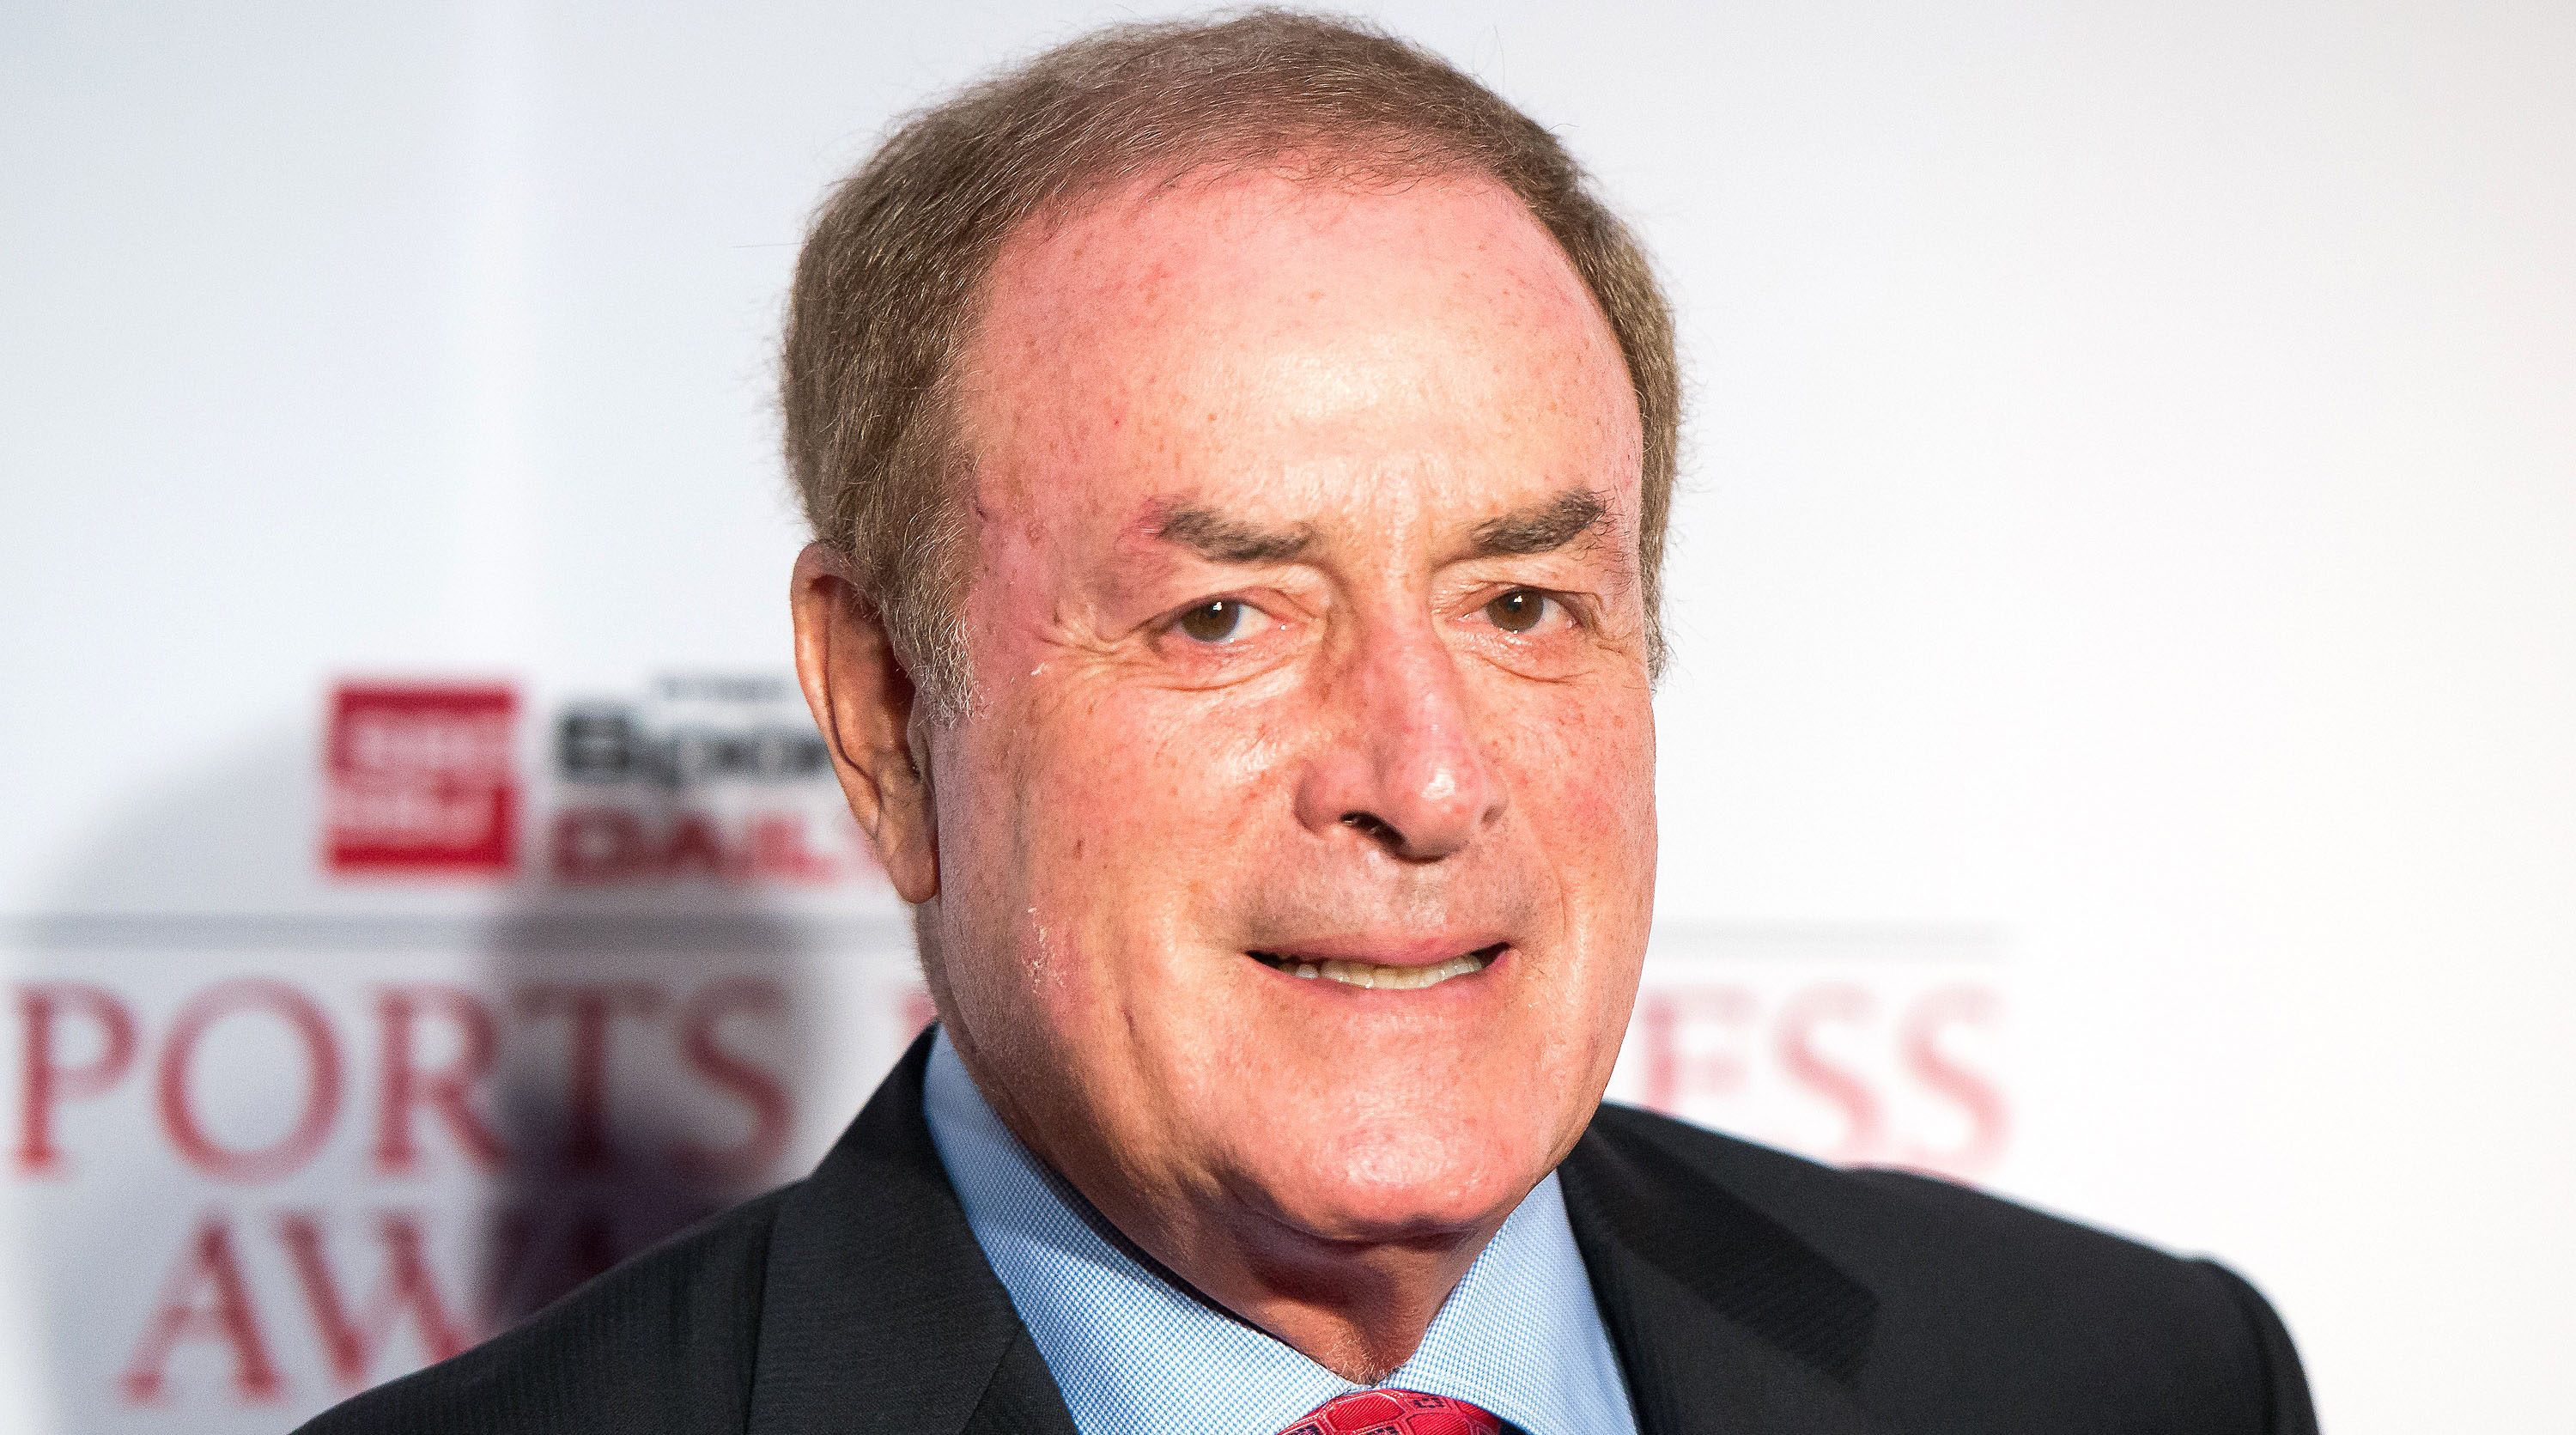 al michaels harvey weinstein comment comparing him to giants si com